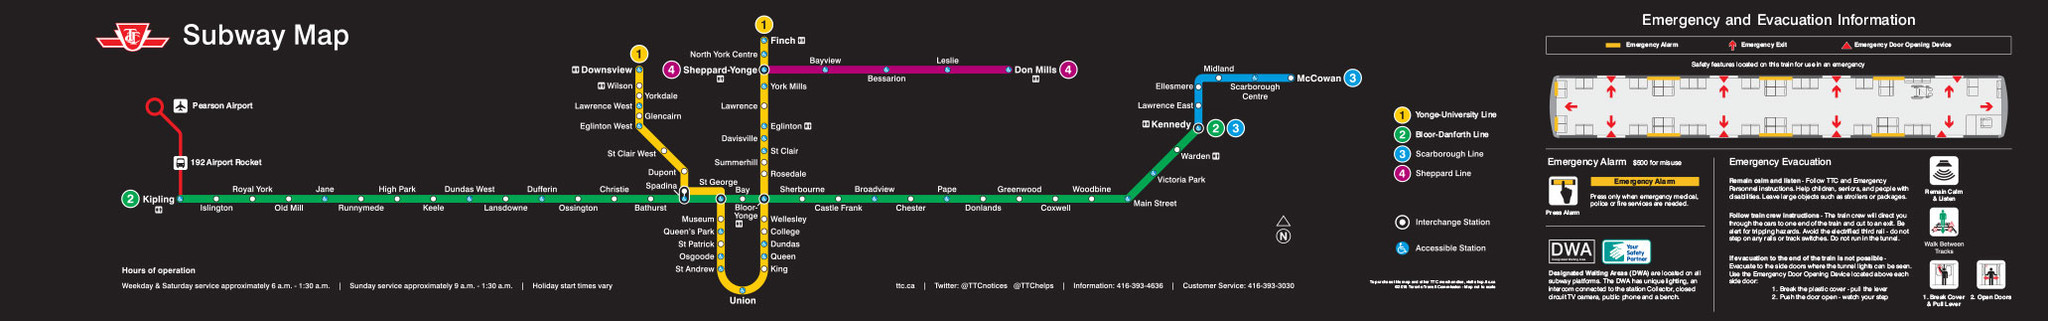 Official Subway Route Diagram ...